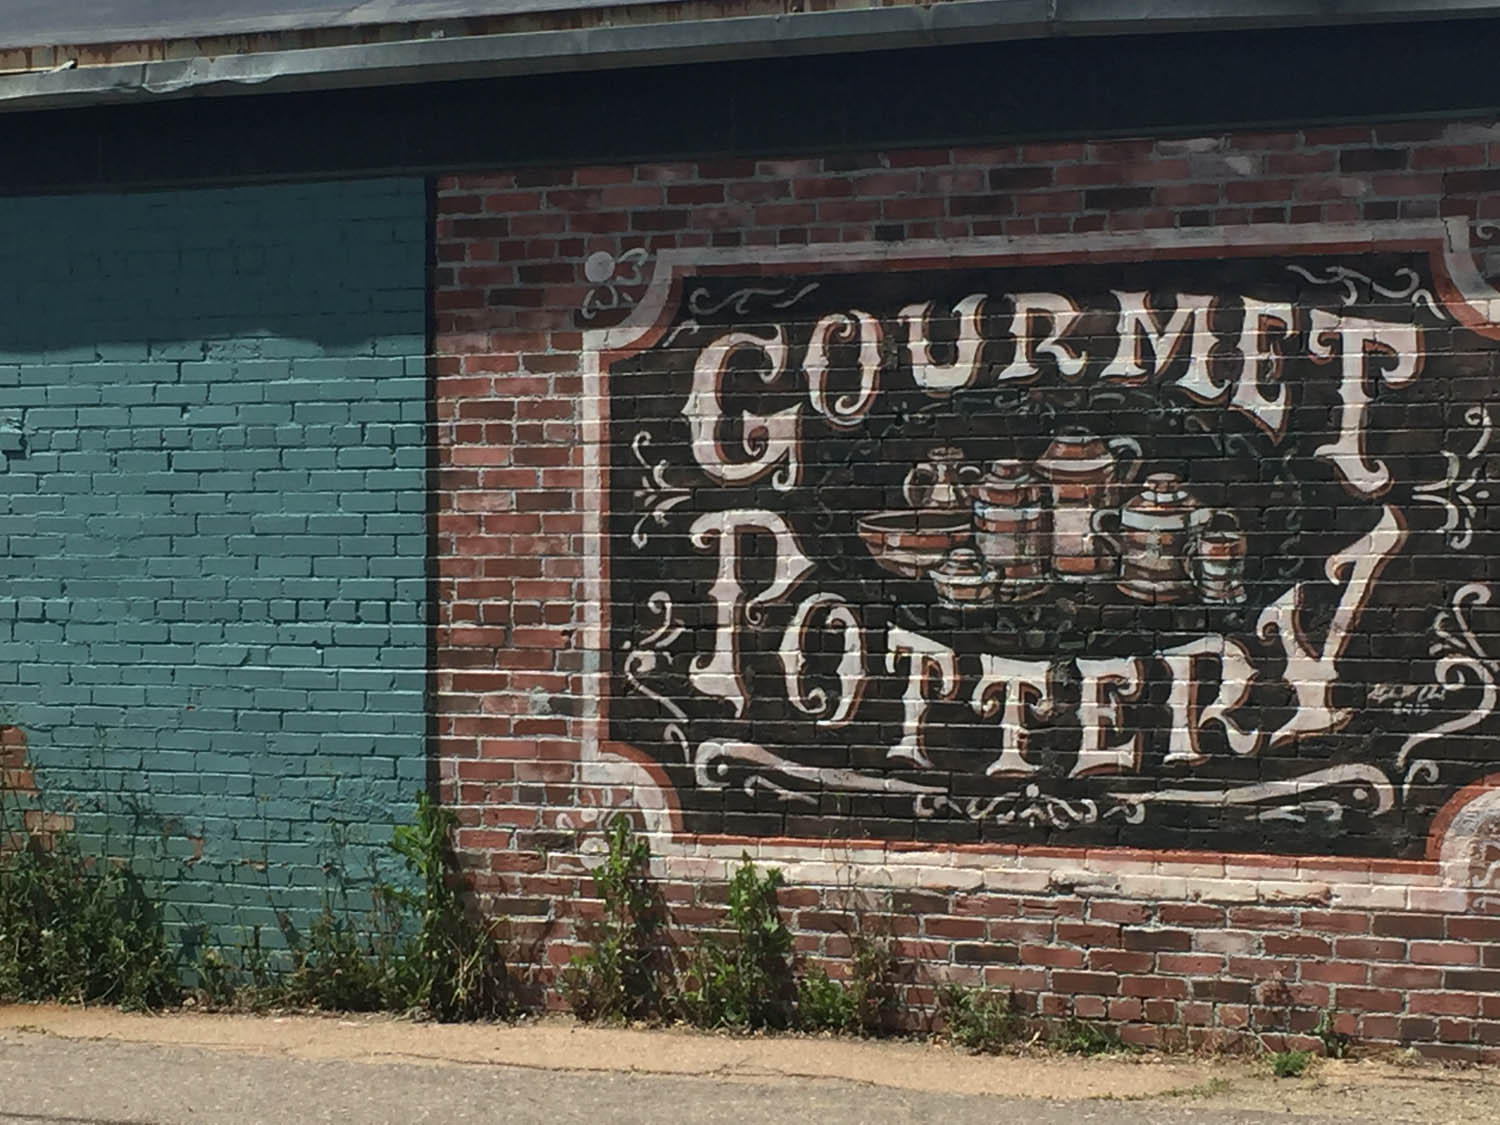 Pottery shop building in historic old downtown Littleton, CO